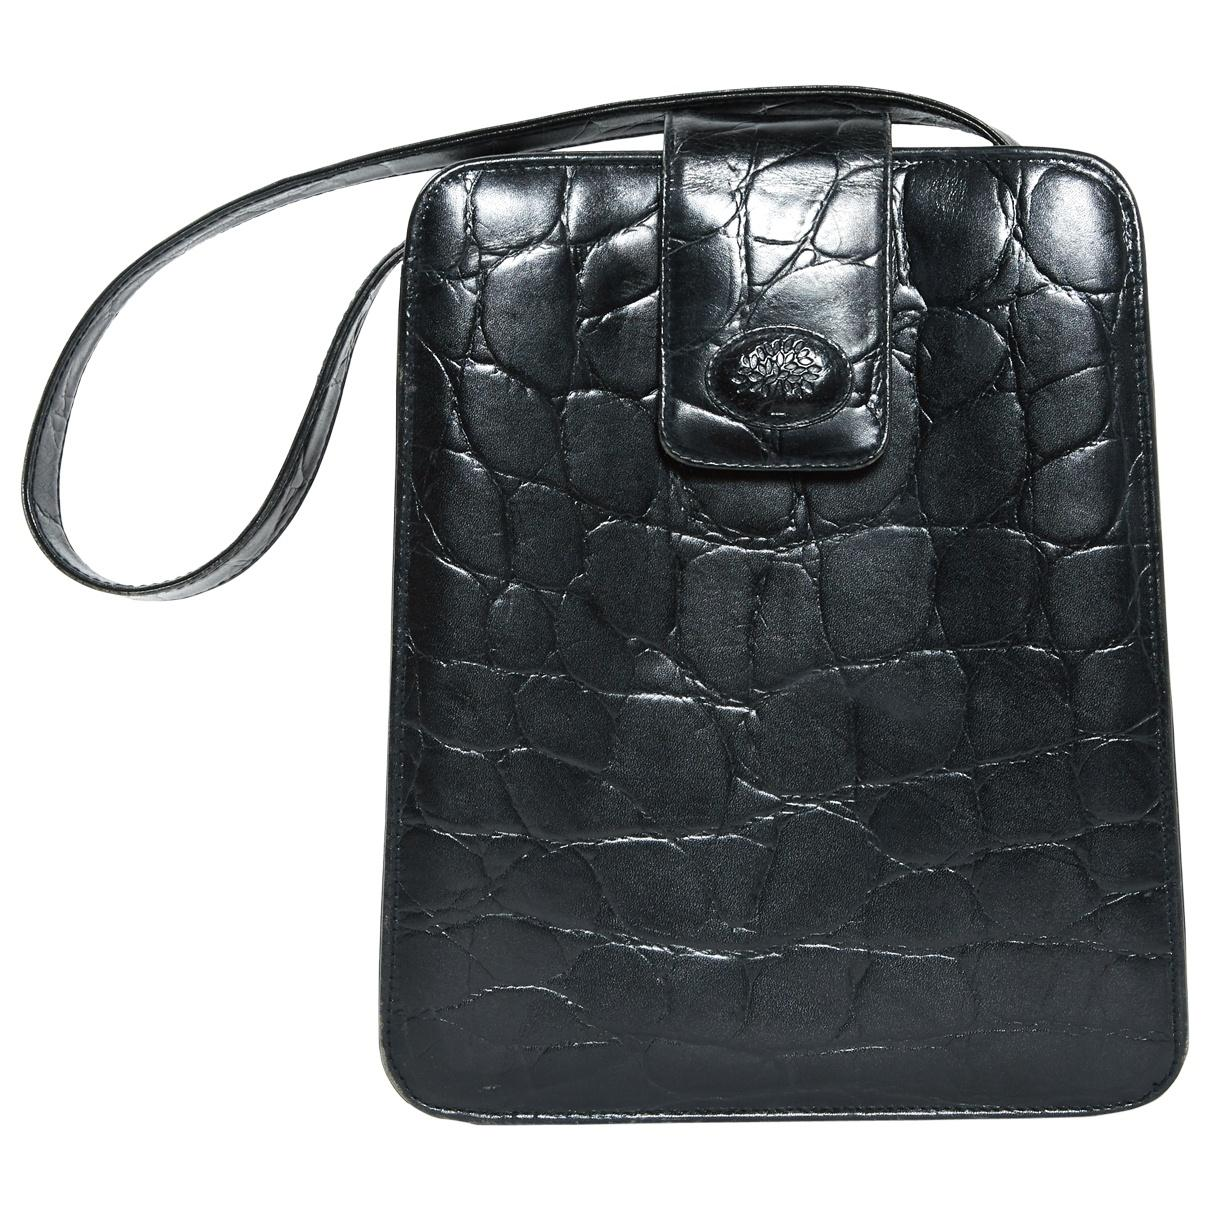 Mulberry. Women s Vintage Black Leather Handbag. £196 £177 From Vestiaire  Collective 88f57cdff1bb9